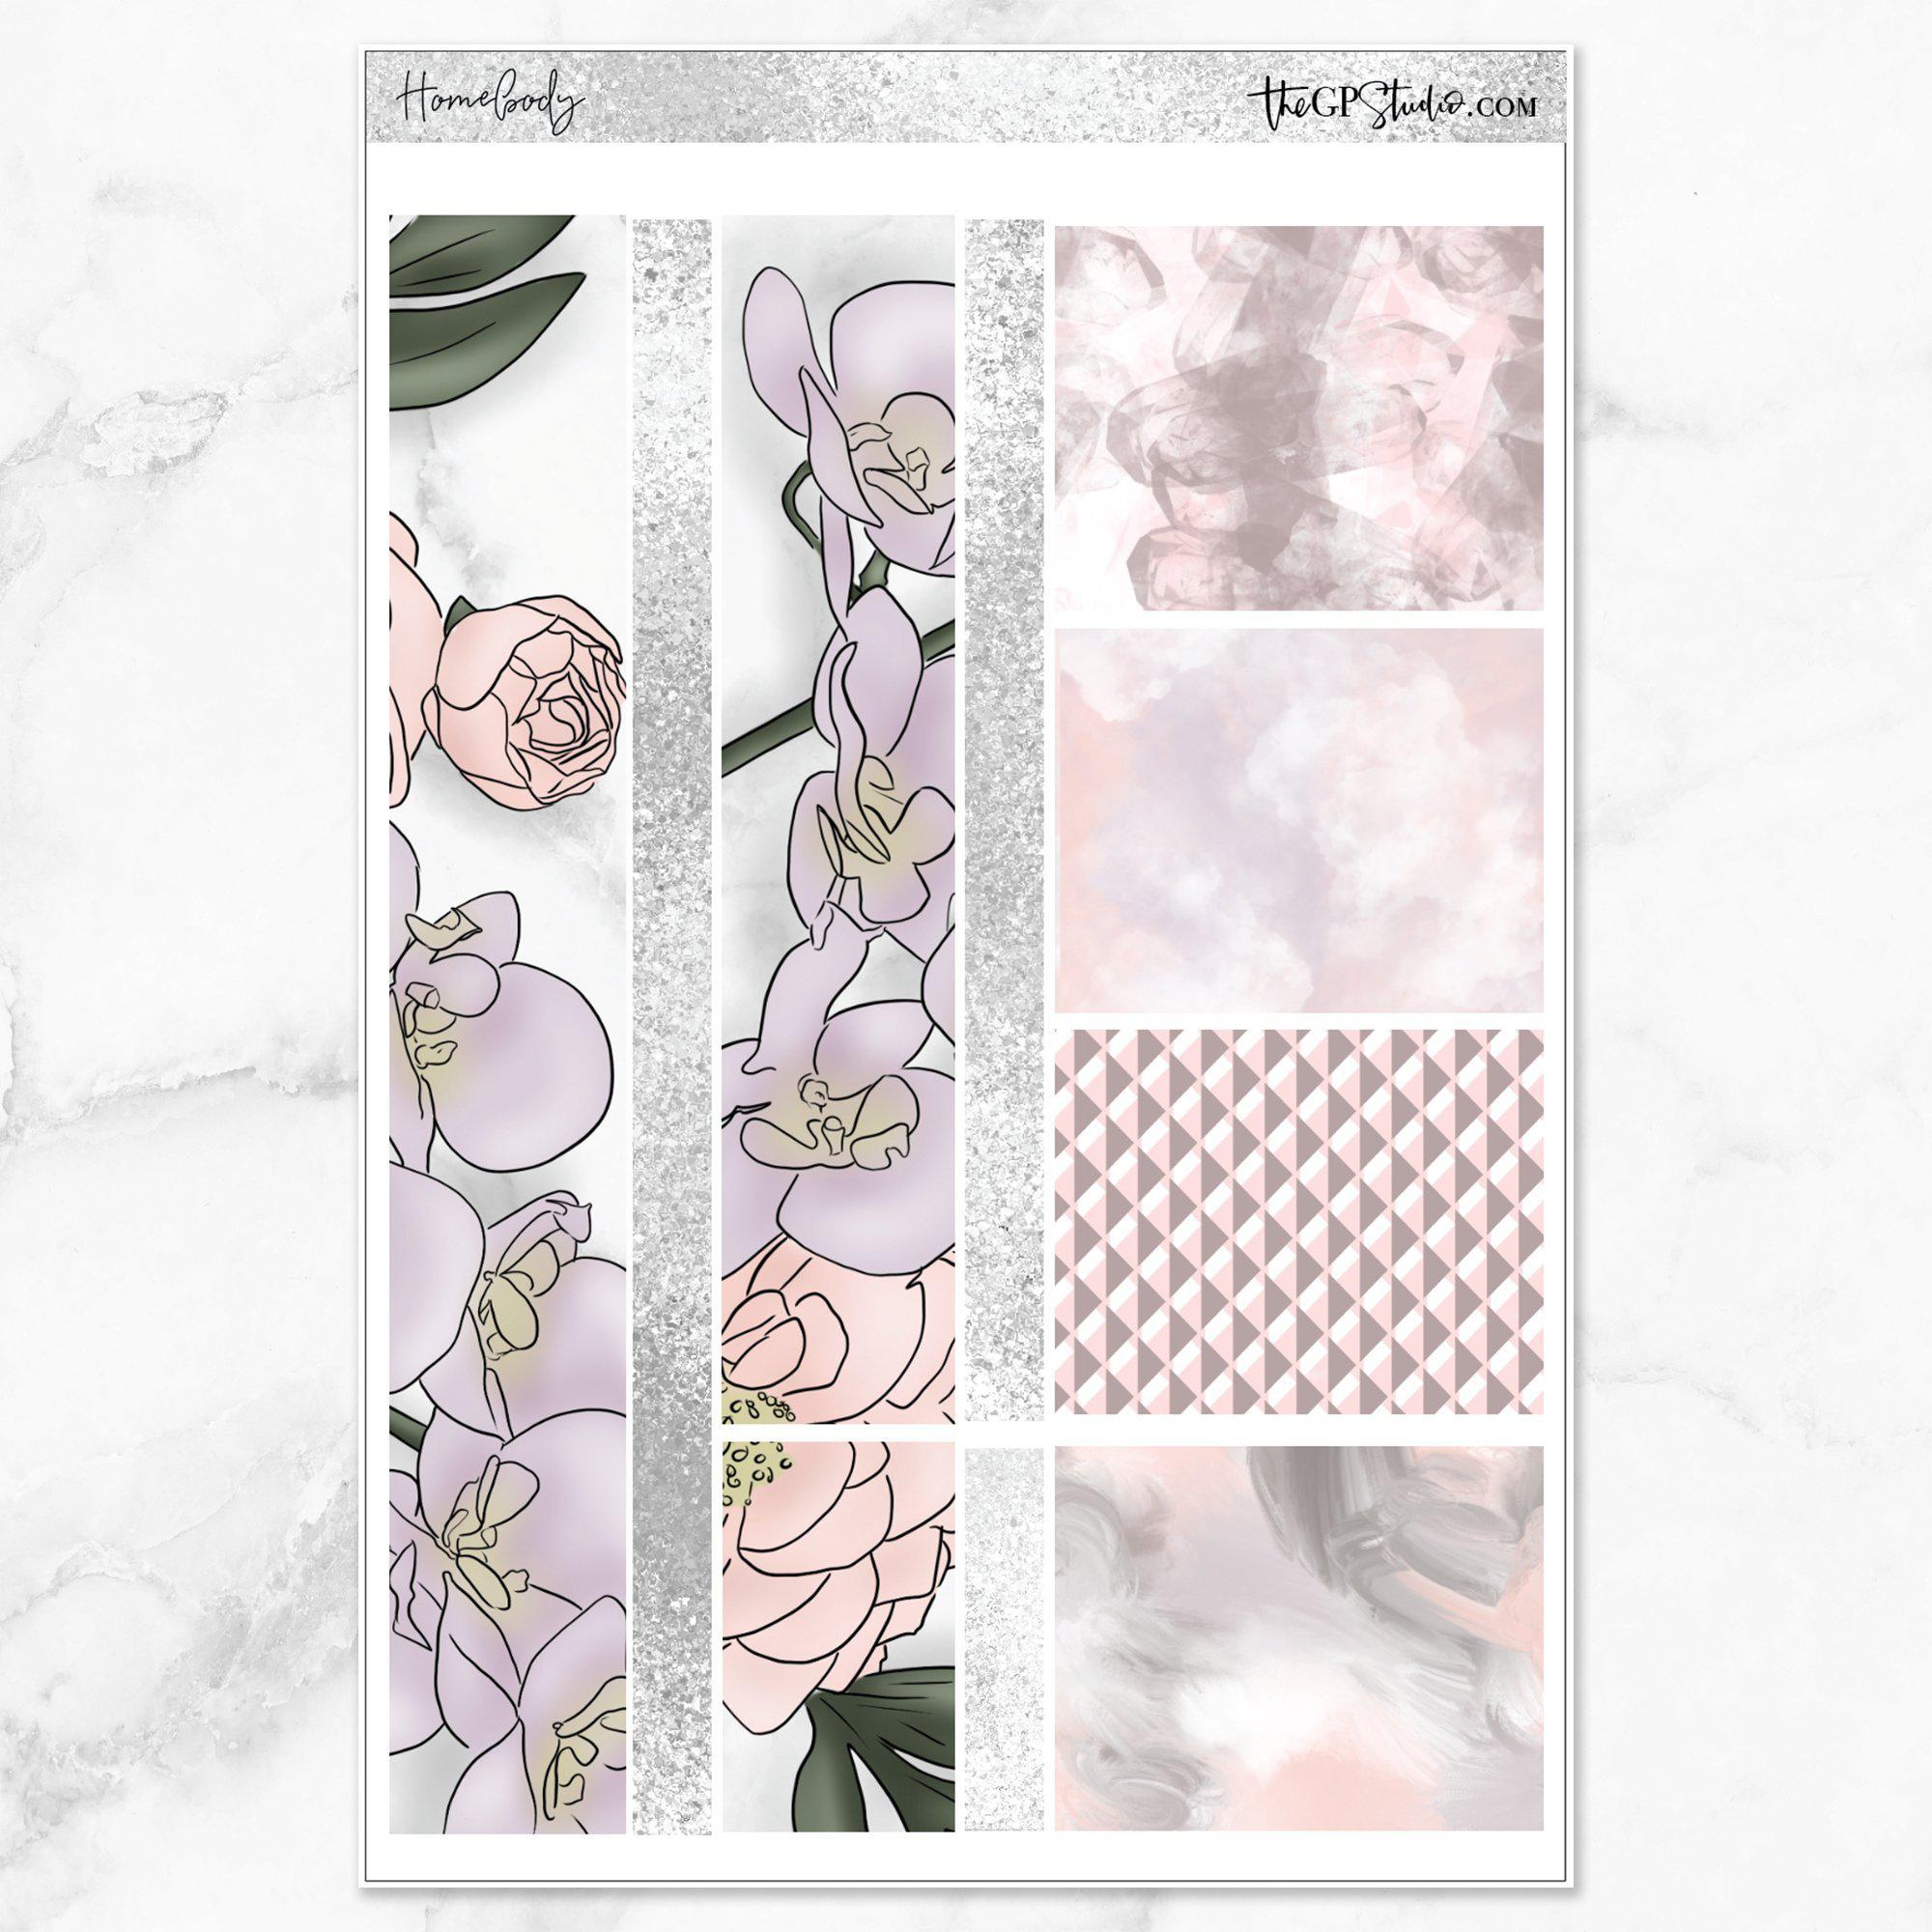 HOMEBODY Washi Sheet Stickers-The GP Studio